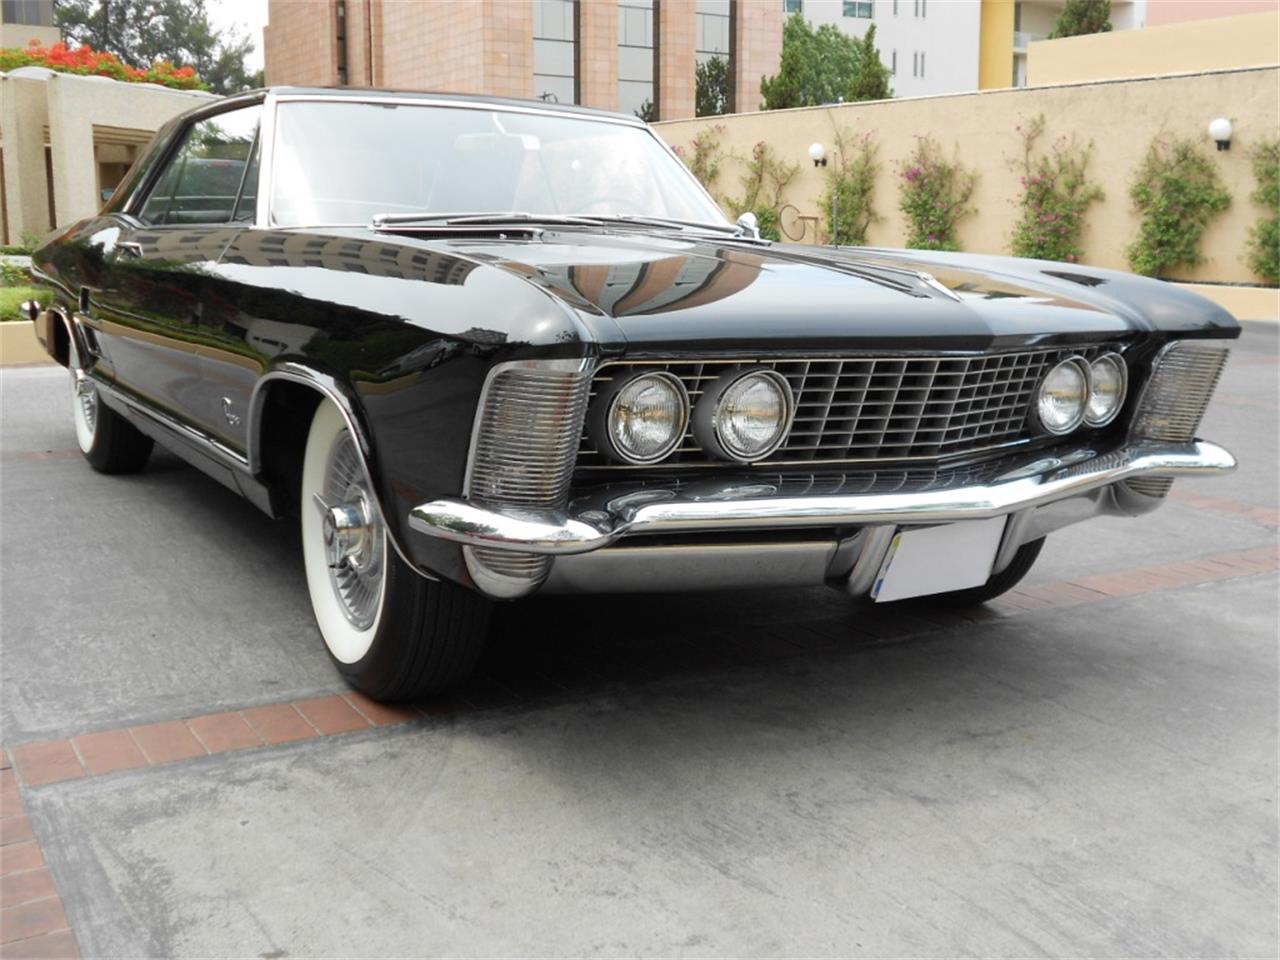 Large Picture of Classic '63 Buick Riviera - $25,000.00 Offered by a Private Seller - Q8L8